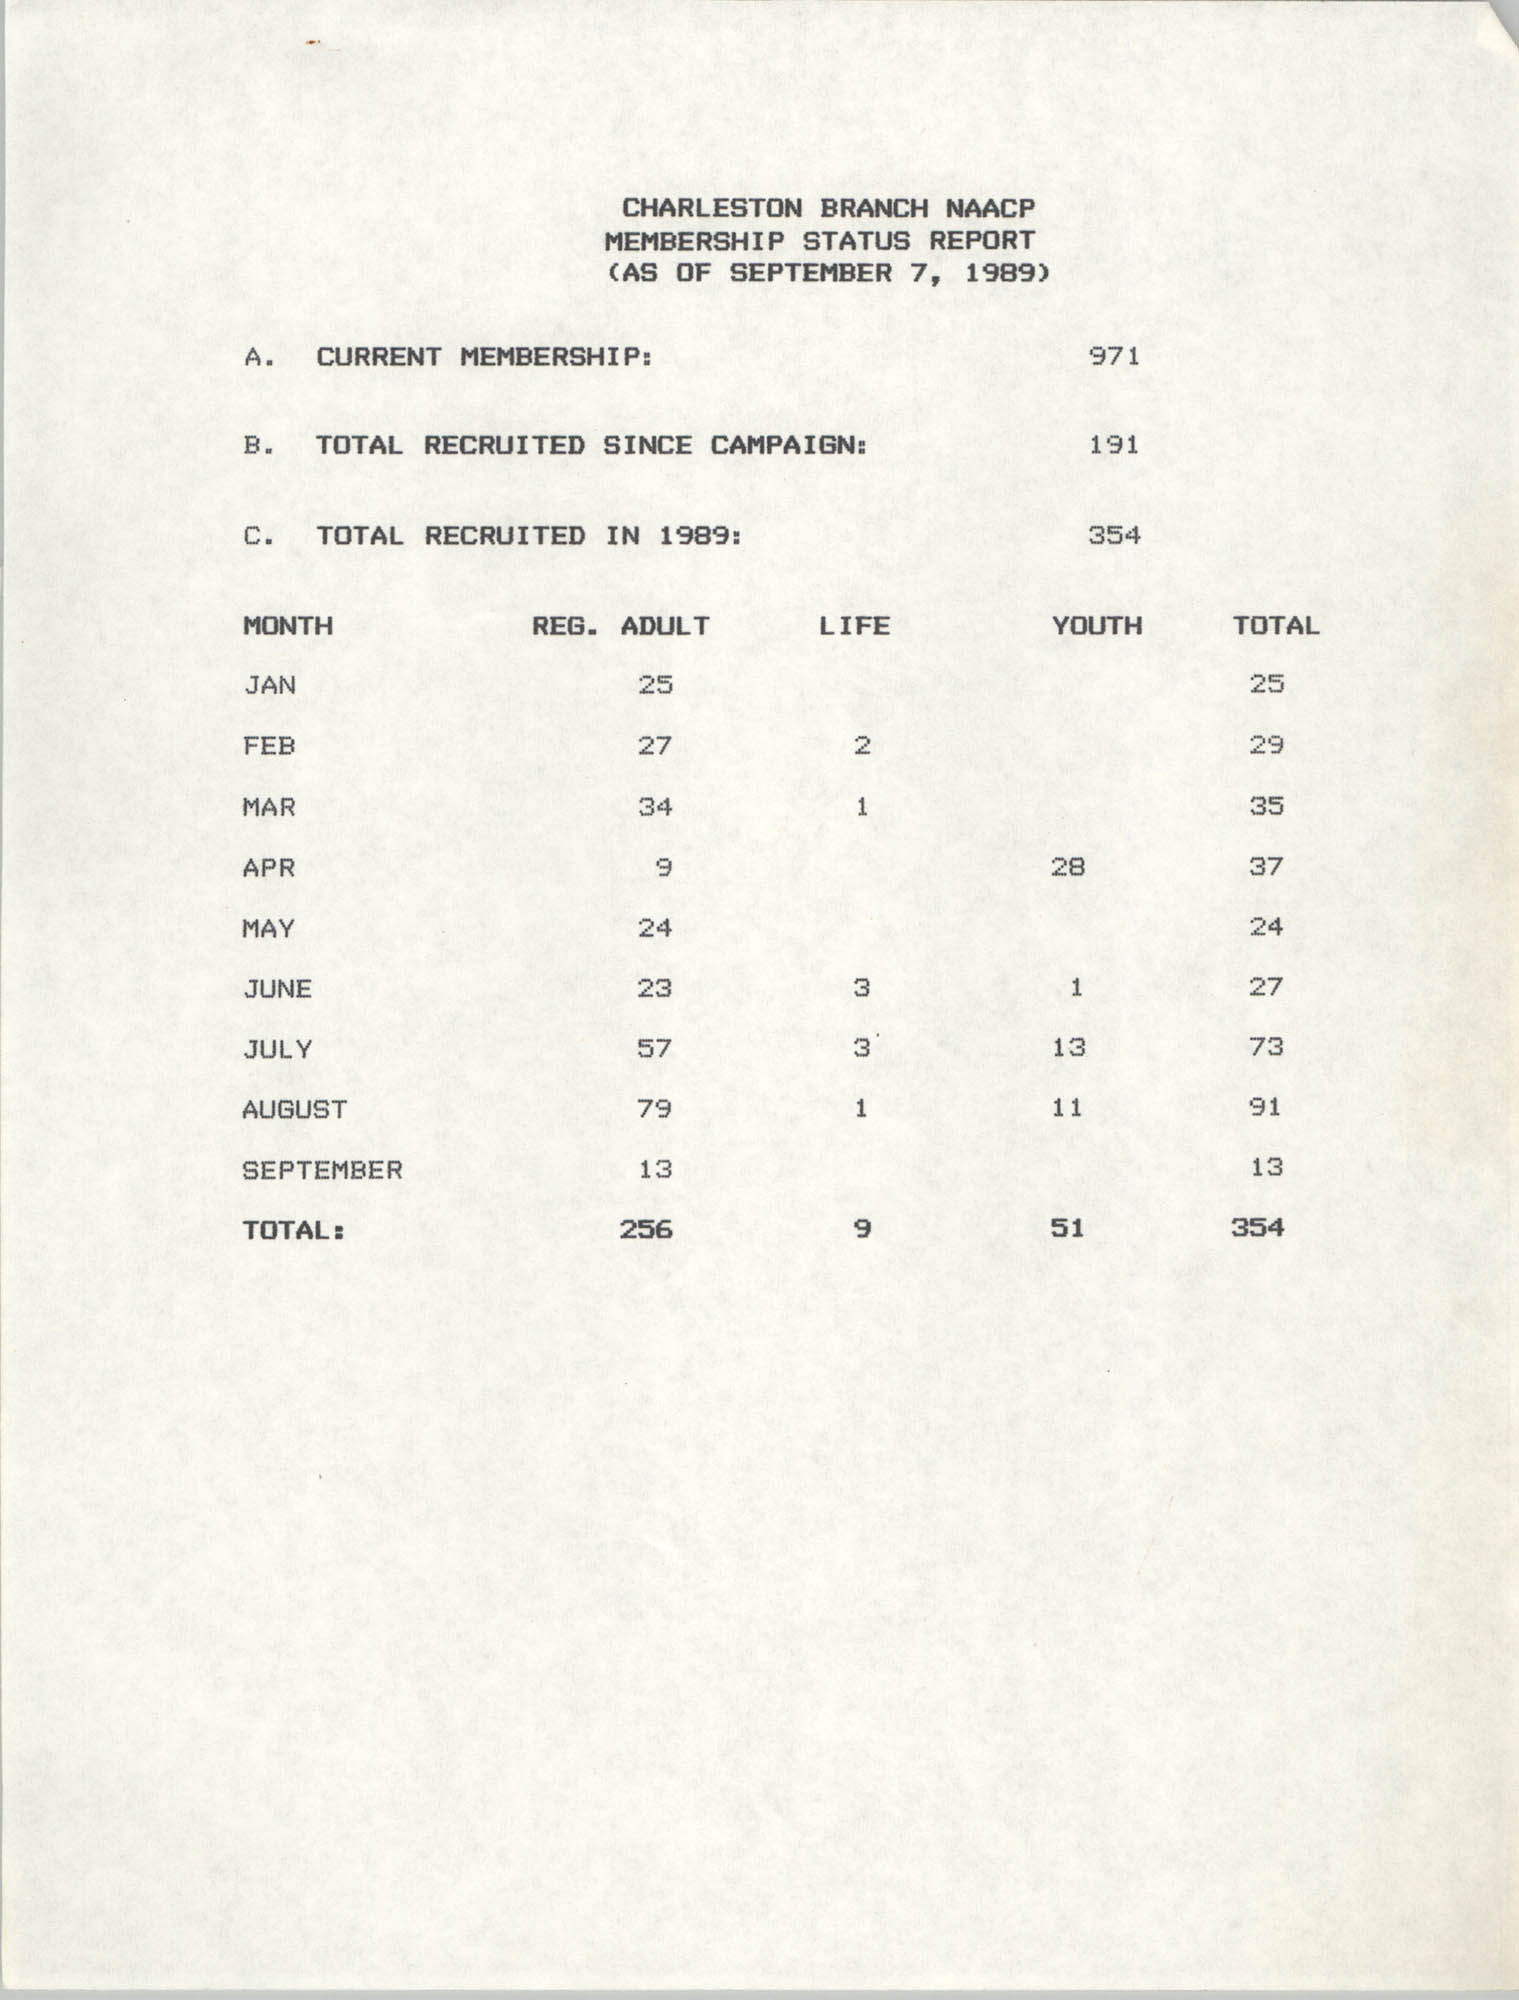 Membership Status Report, National Association for the Advancement of Colored People, September 7, 1989